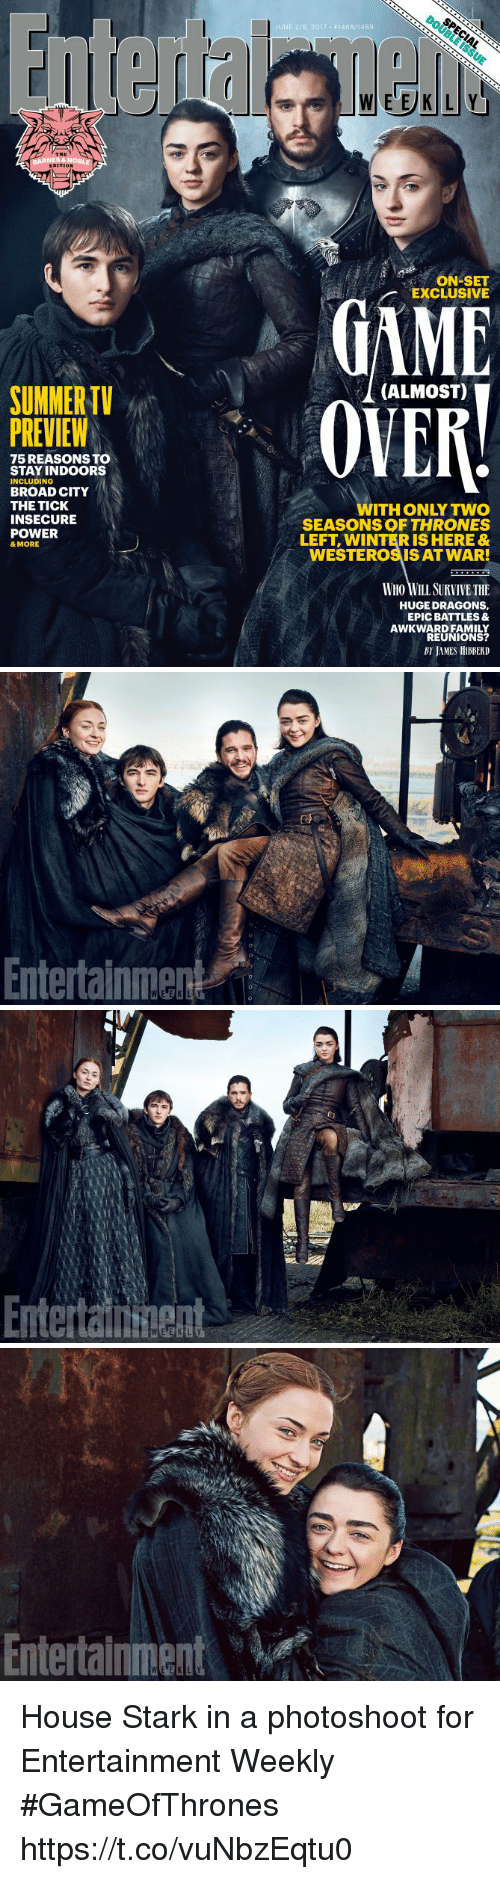 winter is here: SUMMER  PREVIEW  75 REASONS TO  STAY INDOORS  INCLUDING  BROAD CITY  THE TICK  INSECURE  POWER  & MORE  JUNE 219, 2017 146 BV146g  ON SET  EXCLUSIVE  (ALMOST)  ITH ONLY TWO  SEASONS OF THRONES  LEFT WINTER IS HERE&  WESTEROSISAT WAR!  WHO WILL SURVIVETHE  HUGE DRAGONS,  EPIC BATTLES &  AWKWARD FAMILY  REUNIONS?   Entertainment   Enteraituent   Entertainment House Stark in a photoshoot for Entertainment Weekly #GameOfThrones https://t.co/vuNbzEqtu0